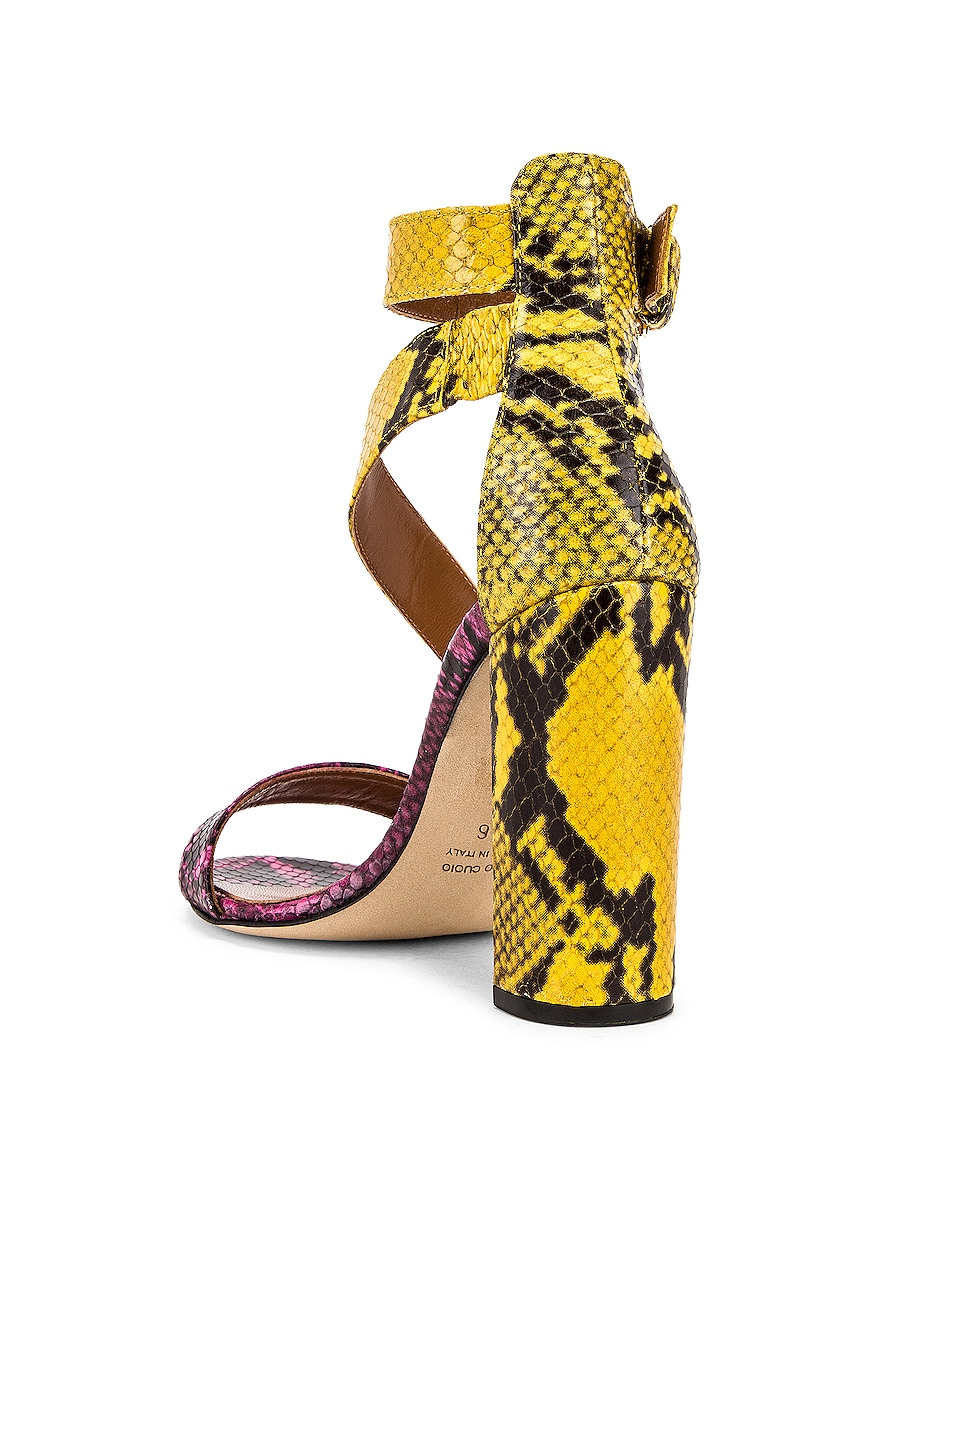 Image 3 of Paris Texas Diagonal Strap Snake 100 Sandal Heel in Fuchsia & Yellow